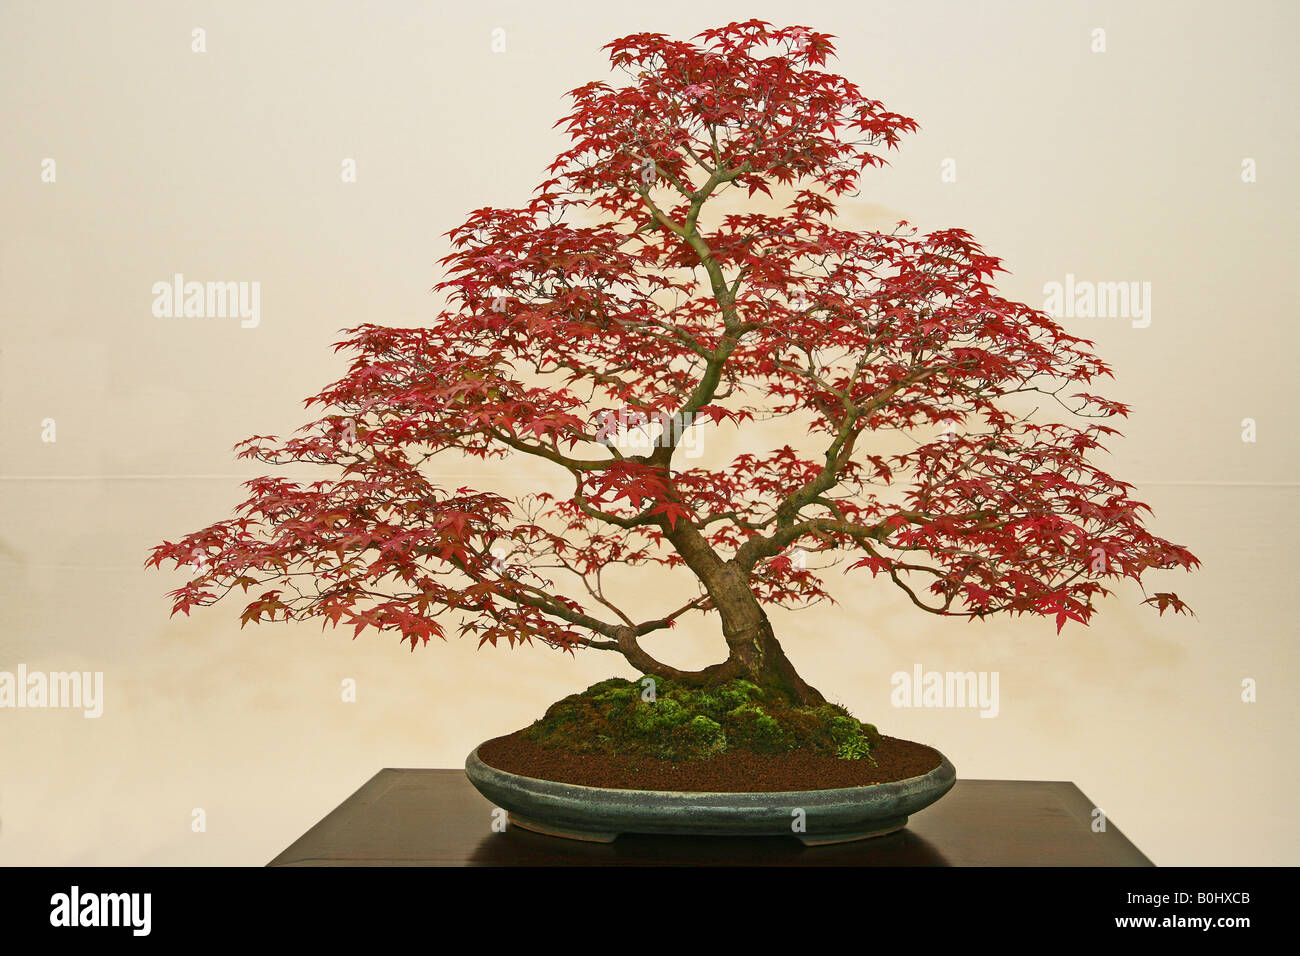 Japanese Maple Acer Palmatum Deshojo Stock Photo 17604283 Alamy